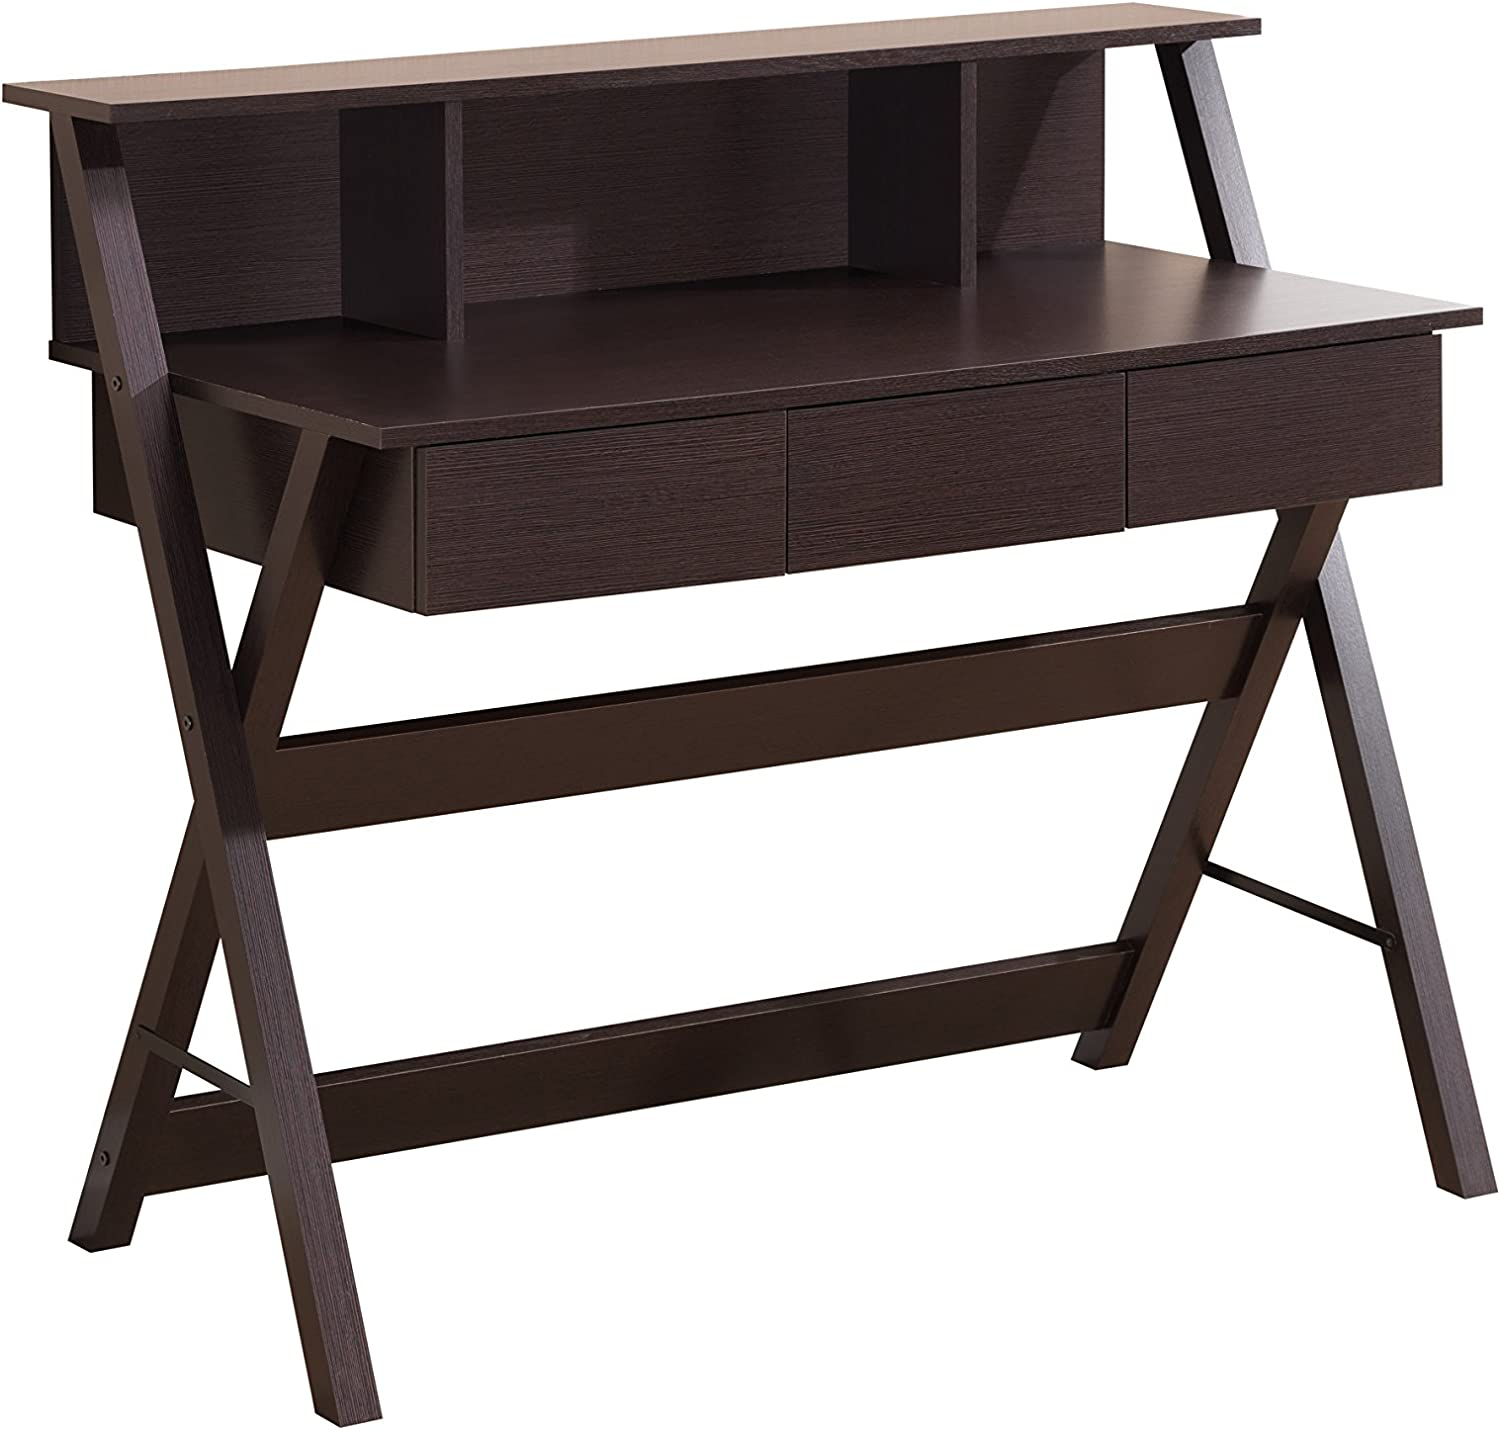 Techni Mobili Fashionable Workstation with Shelf and Storage in Wenge